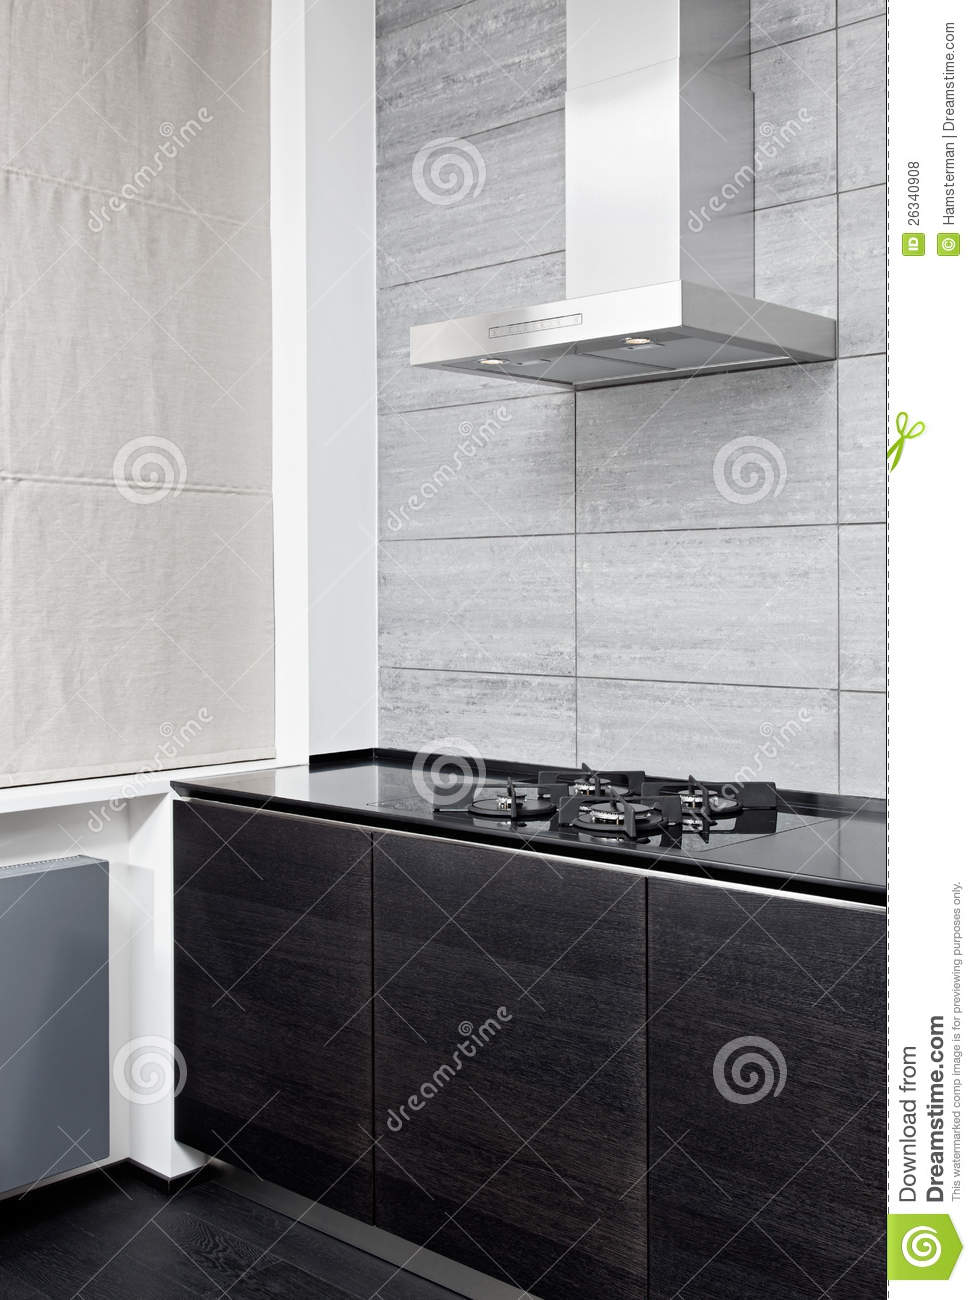 gas stove in kitchen images pictures becuo